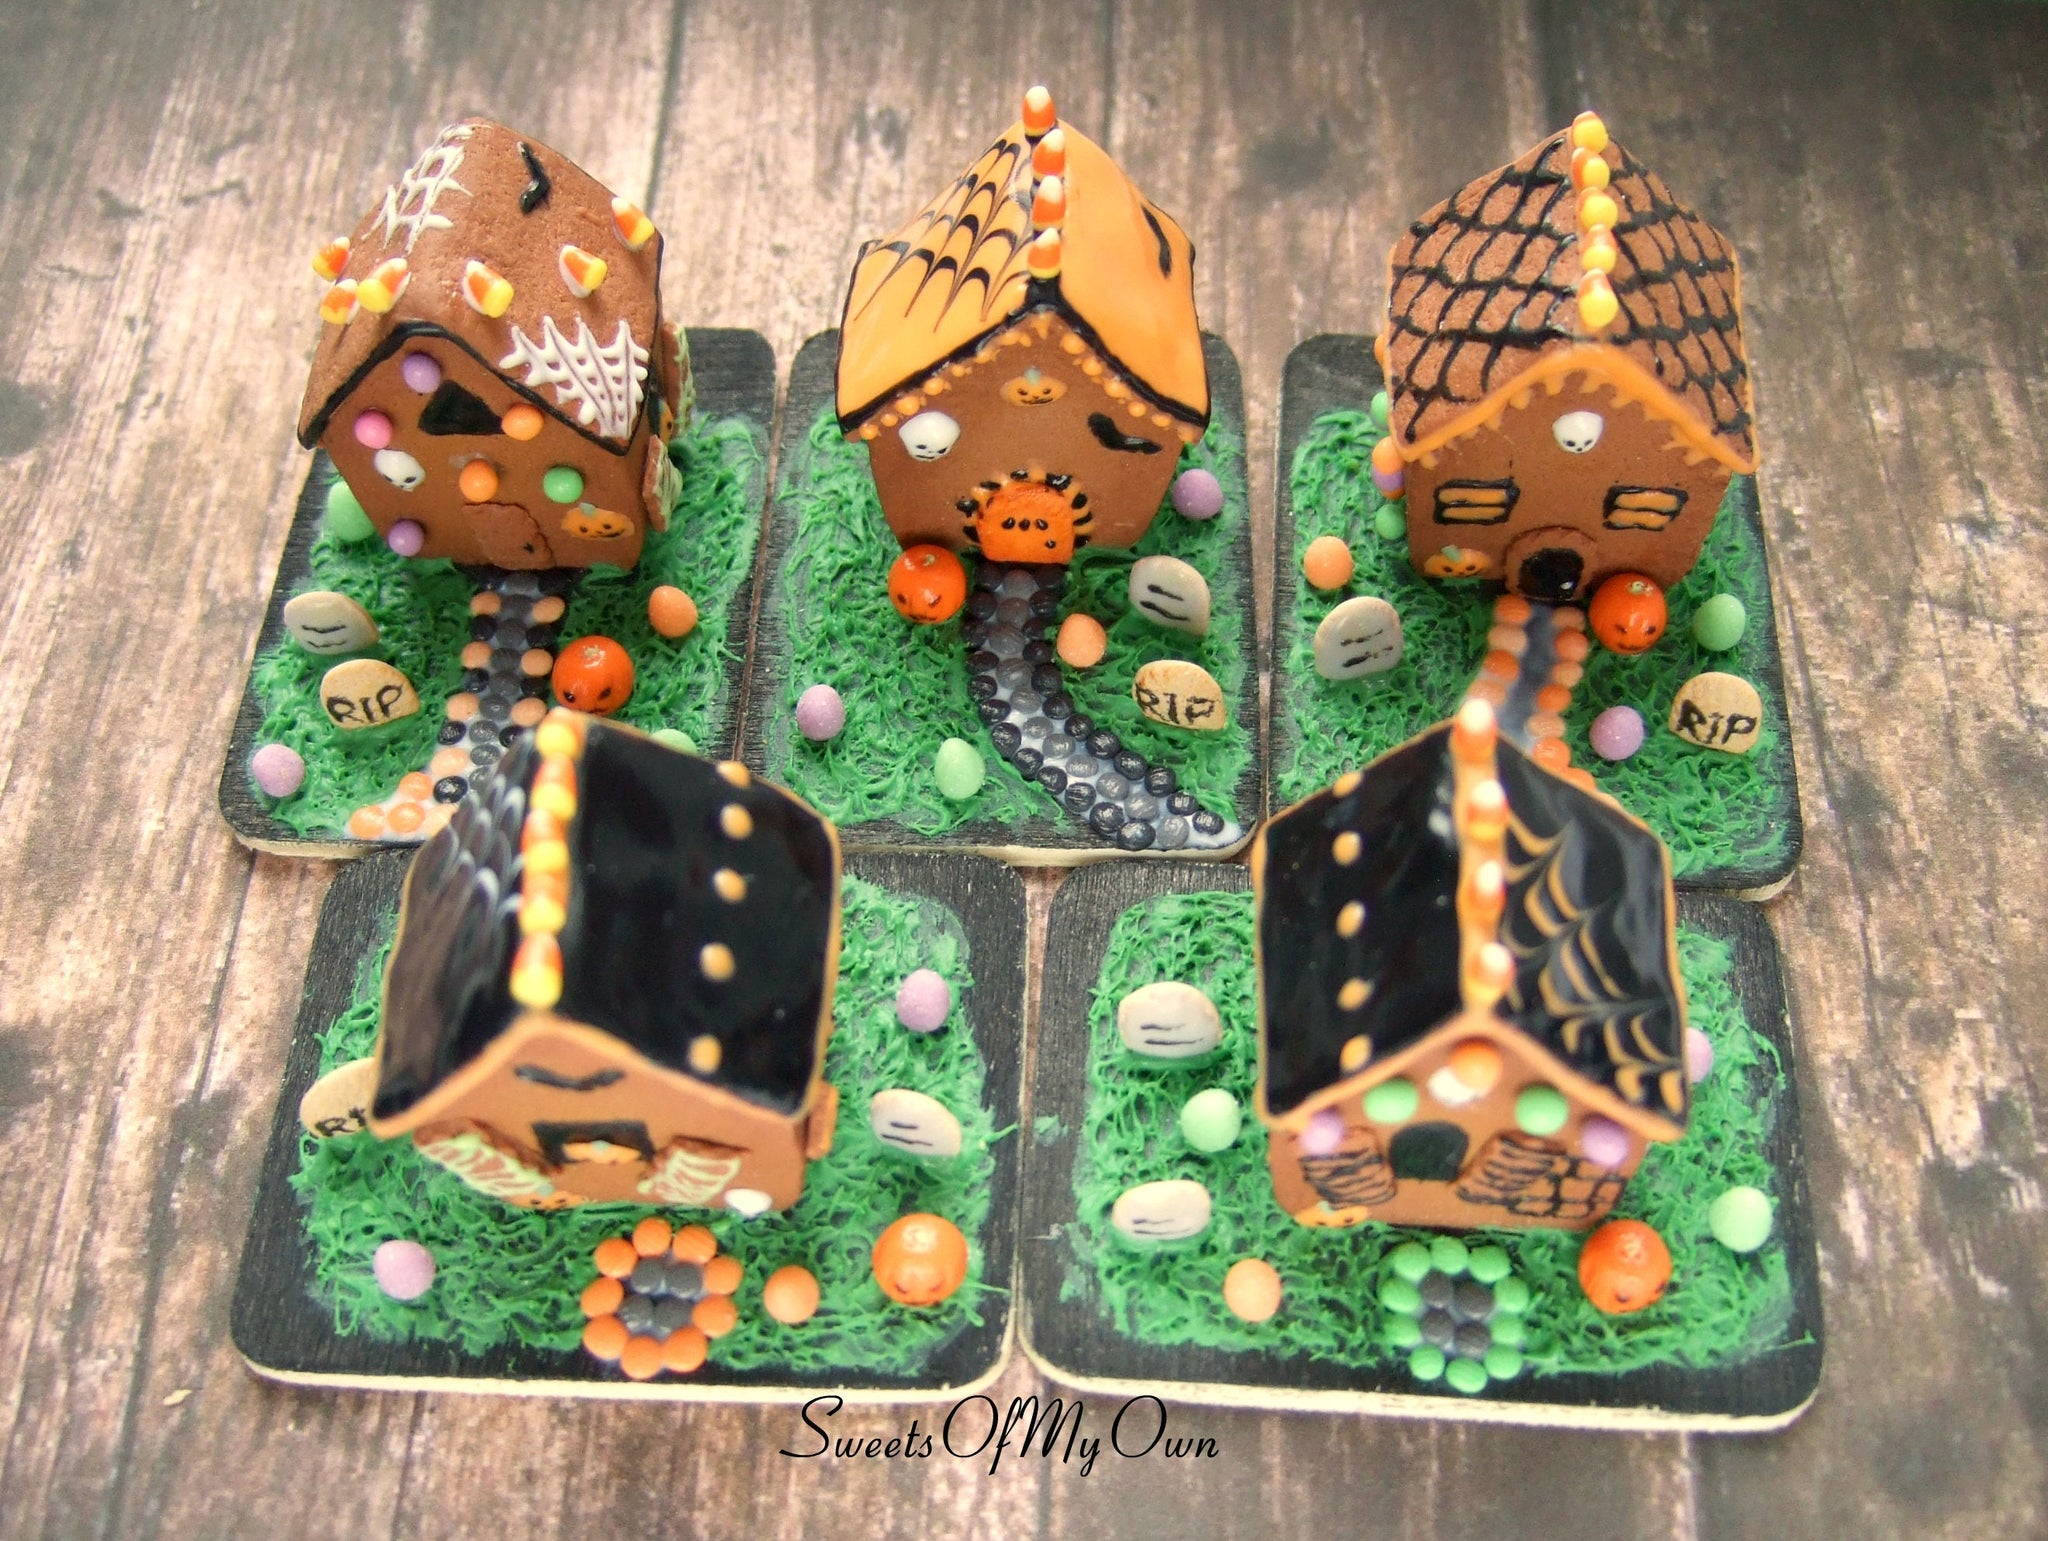 halloween gingerbread house miniature 112 scale